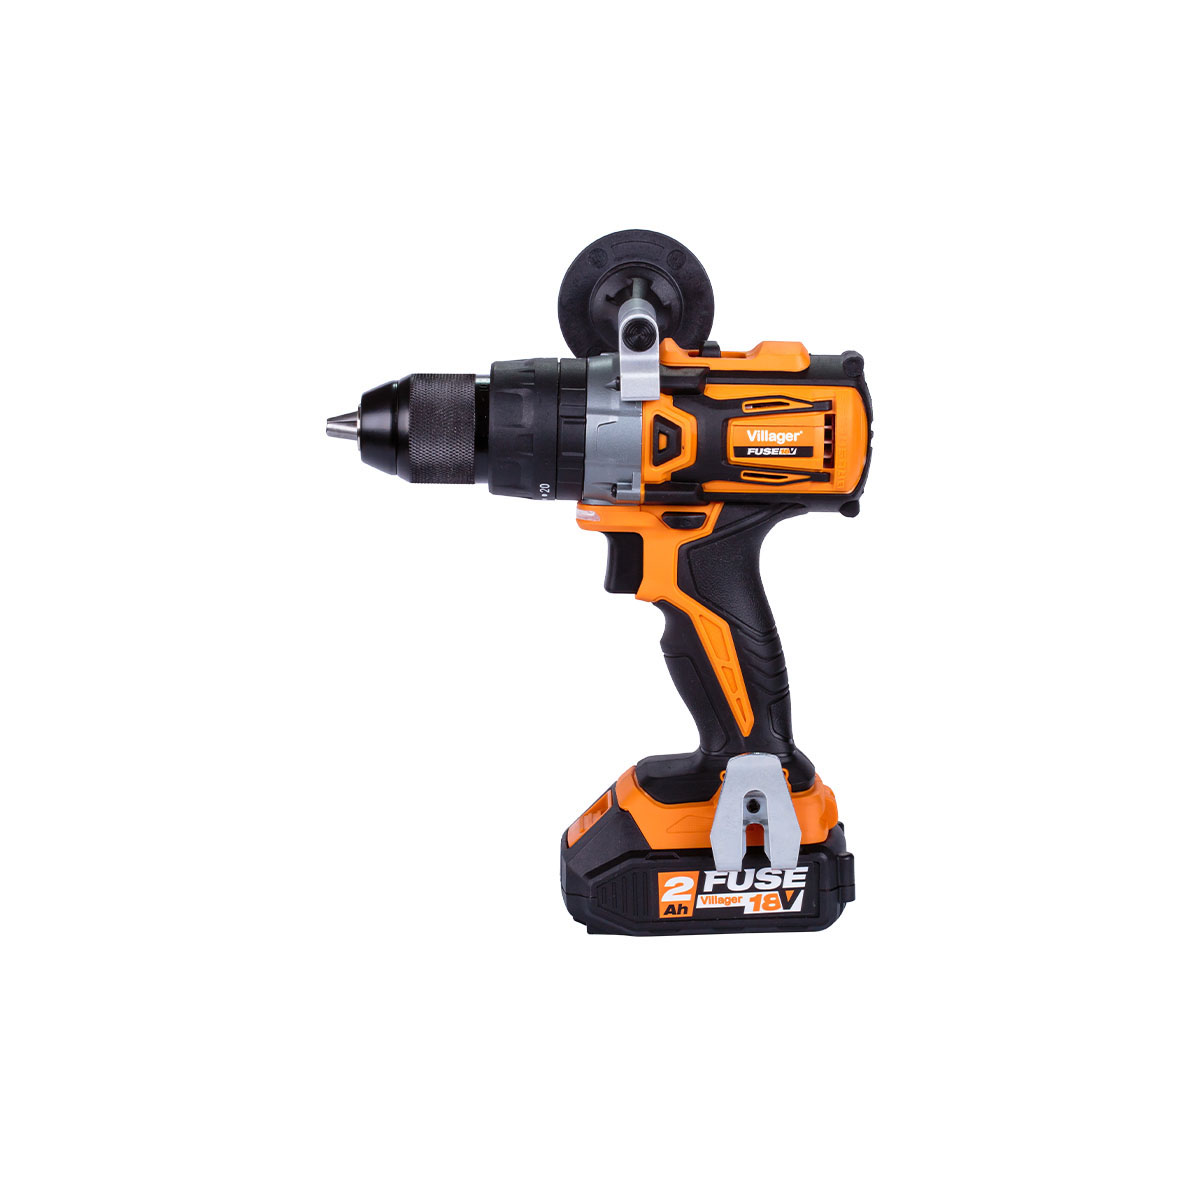 Villager Fuse Brushless Cordless Combi Drill 18v VLP 5120-2BSC with 2 X 2.0AH Batteries